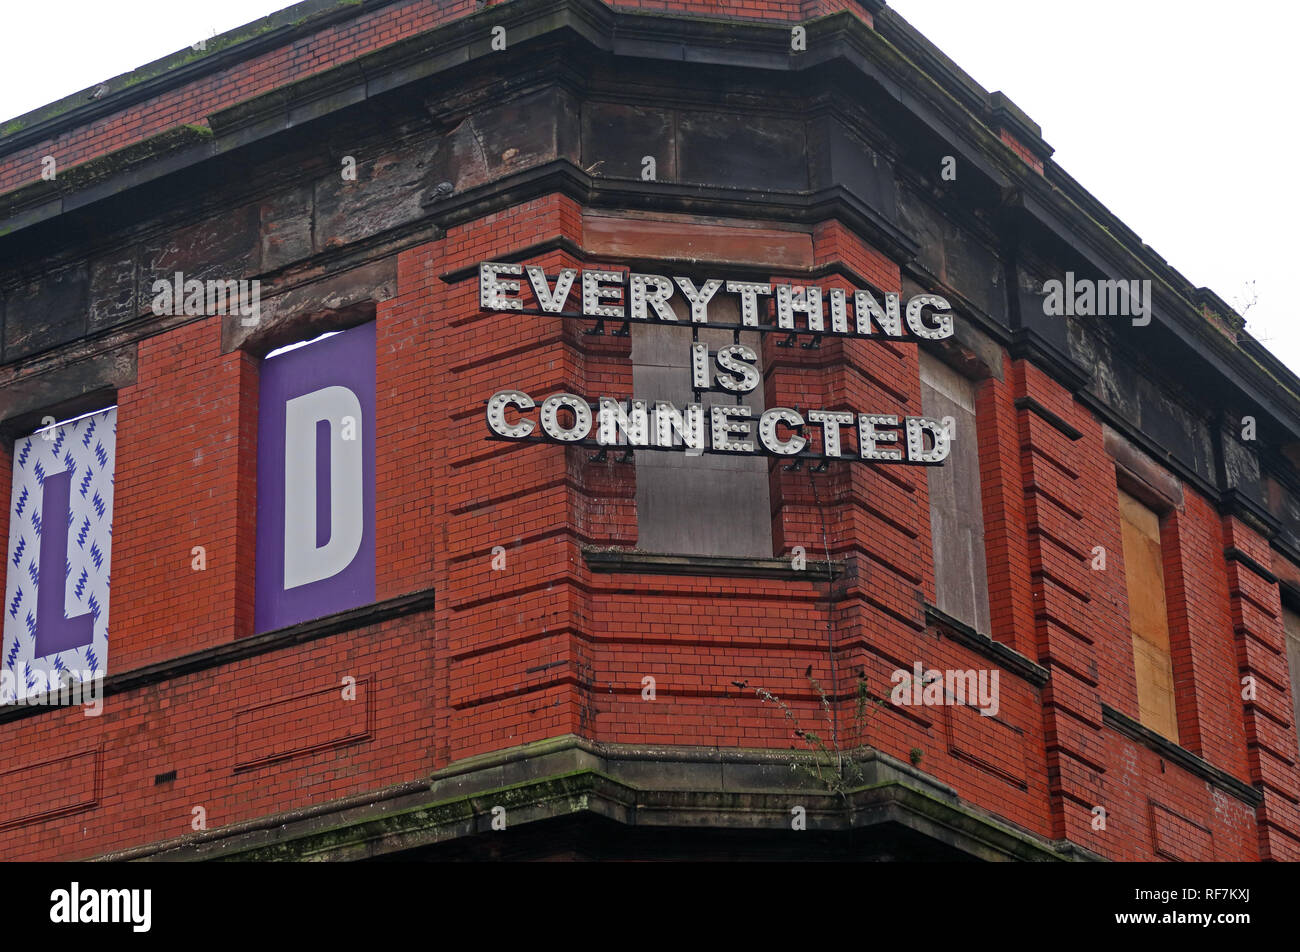 Manchester City Centre,Manchester,City Centre,city,NQ,NQ4,Northern Quarter,North West,England,UK,GoTonySmith,HotpixUK,@HotpixUK,buildings,streets,Railway,sign,Everything Is Connected,Everything,Is,Connected,sign,Fairfield St,Mayfield,history,brick,station,scheme,proposed,development,schemes,poster,posters,property,London,and,Continental,Railways,London,&,Continental,Railways,LNWR,London Midland,Goods Station,disused,Square One development,Square One,Prime,Suspect,drug,dealers,haunt